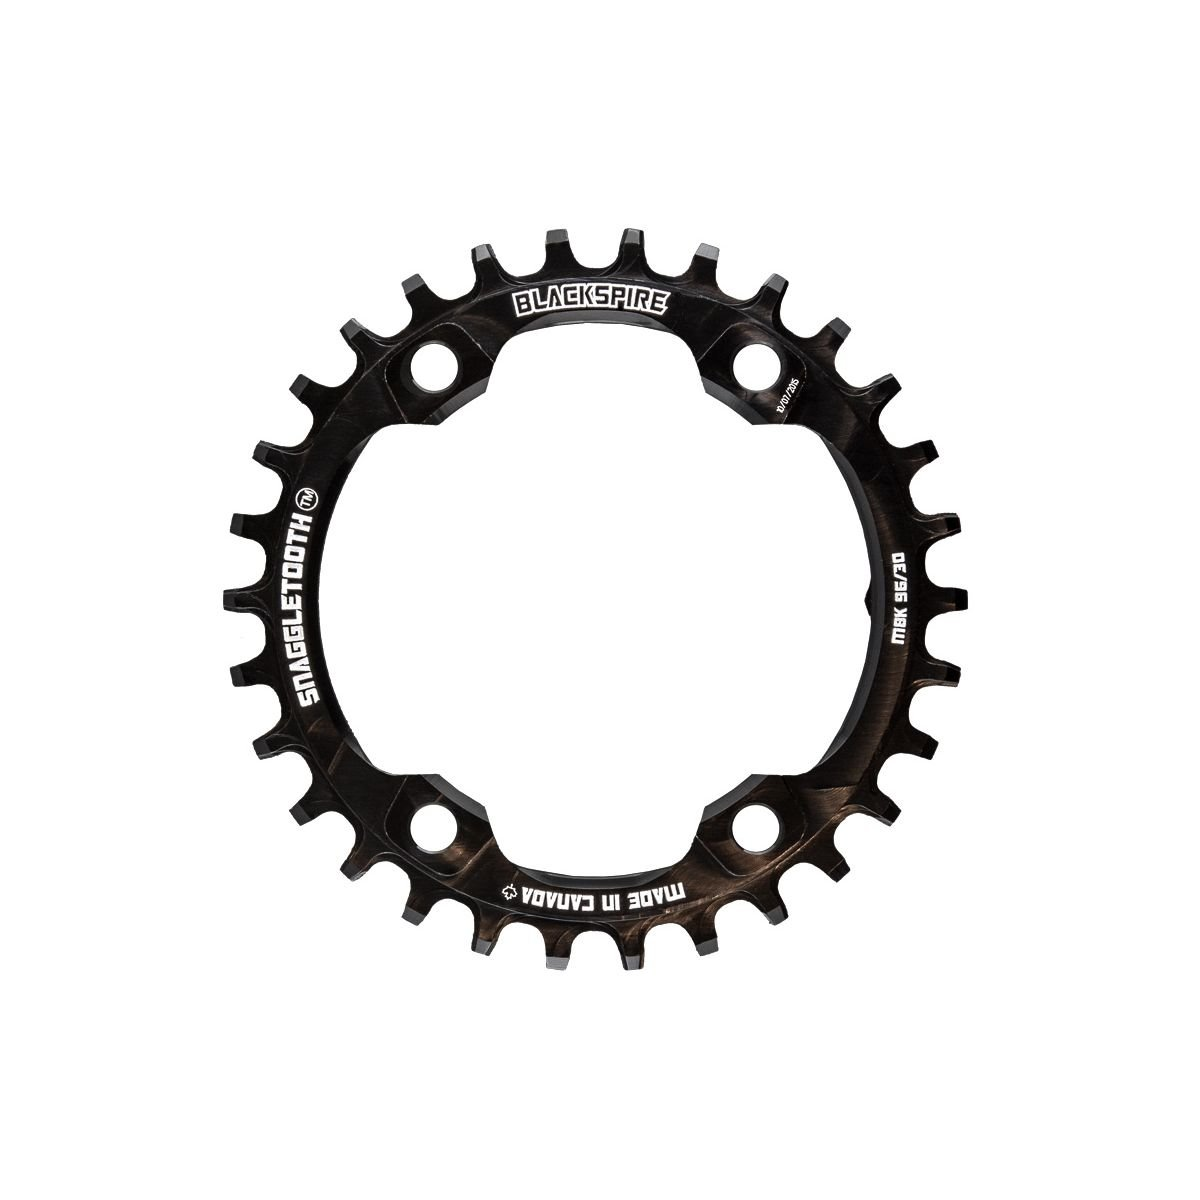 Schwarzspire Snaggletooth narrow wide chainring XT8000 schwarz 96mm 36t 4 bolt